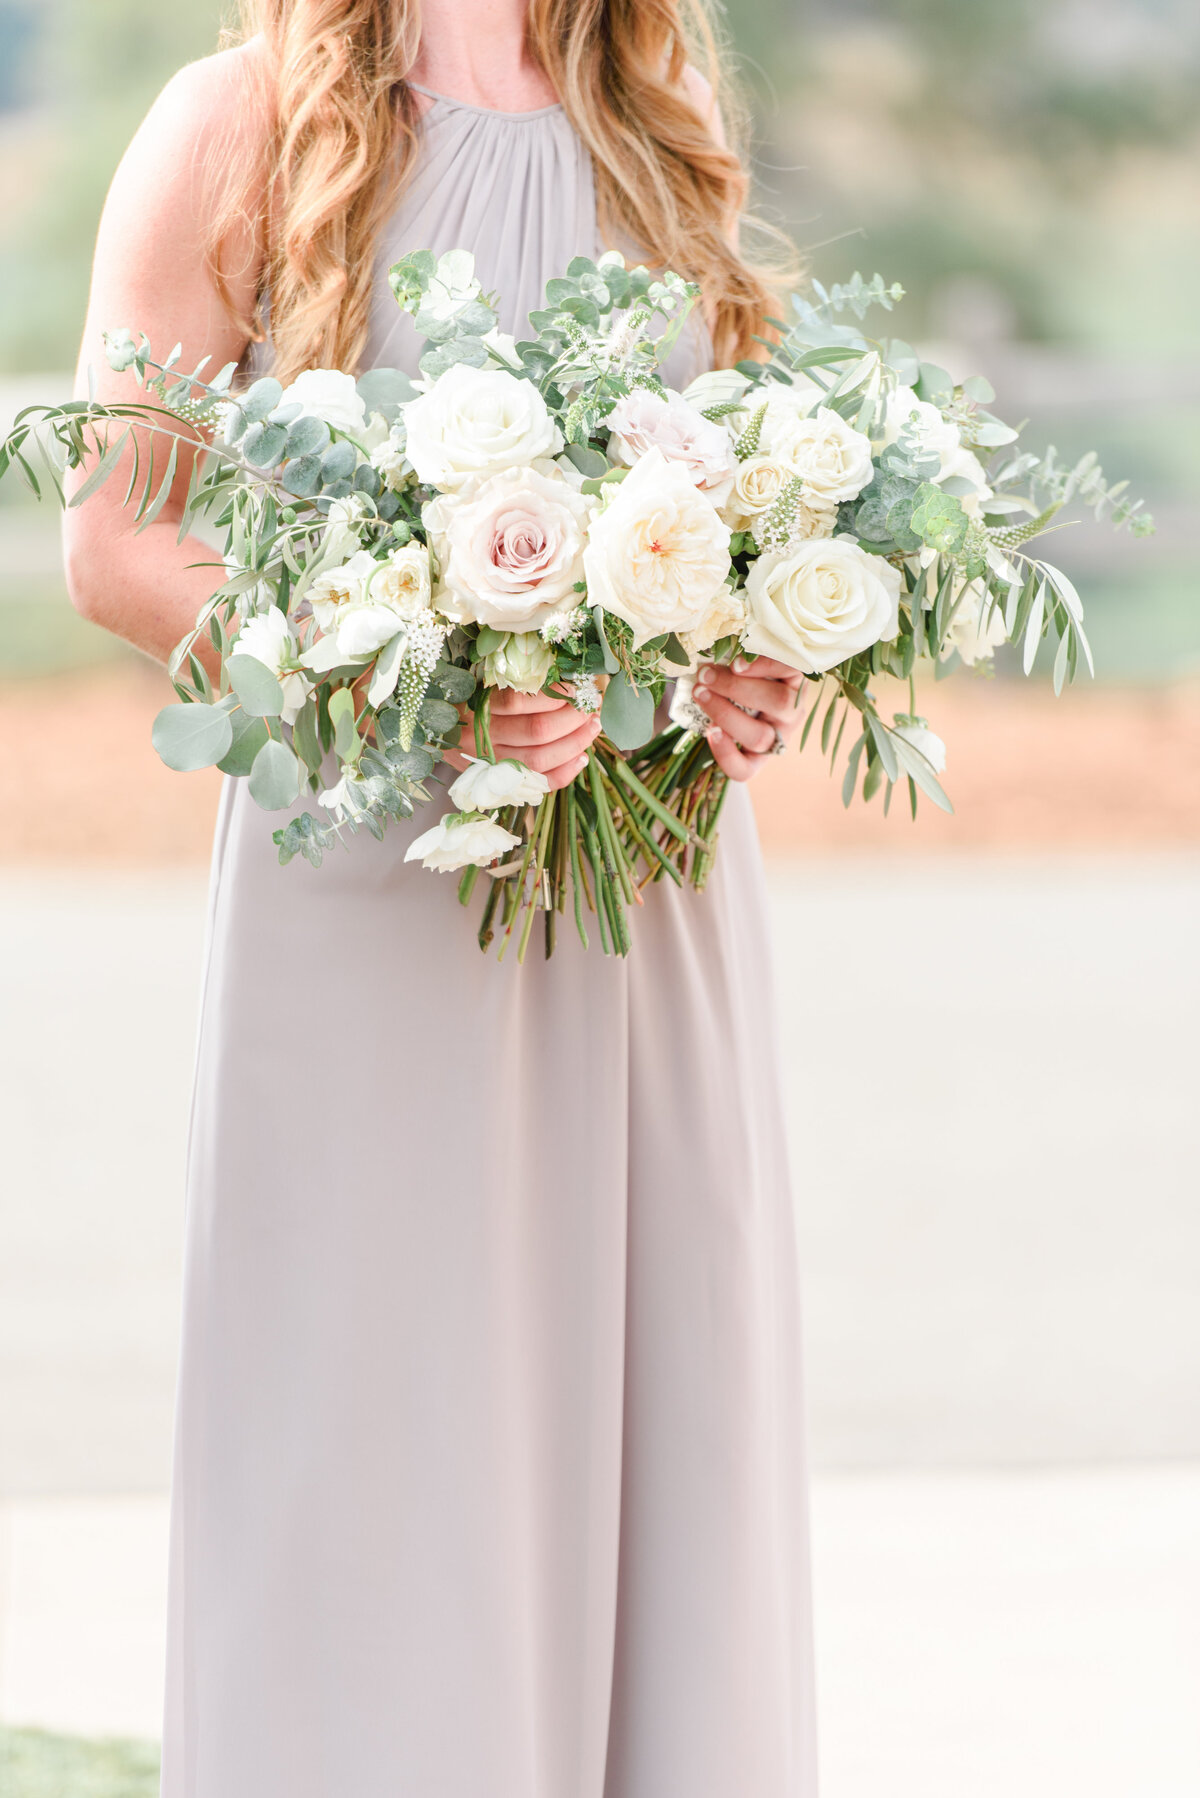 bridesmaid holding a full bouquet of flowers